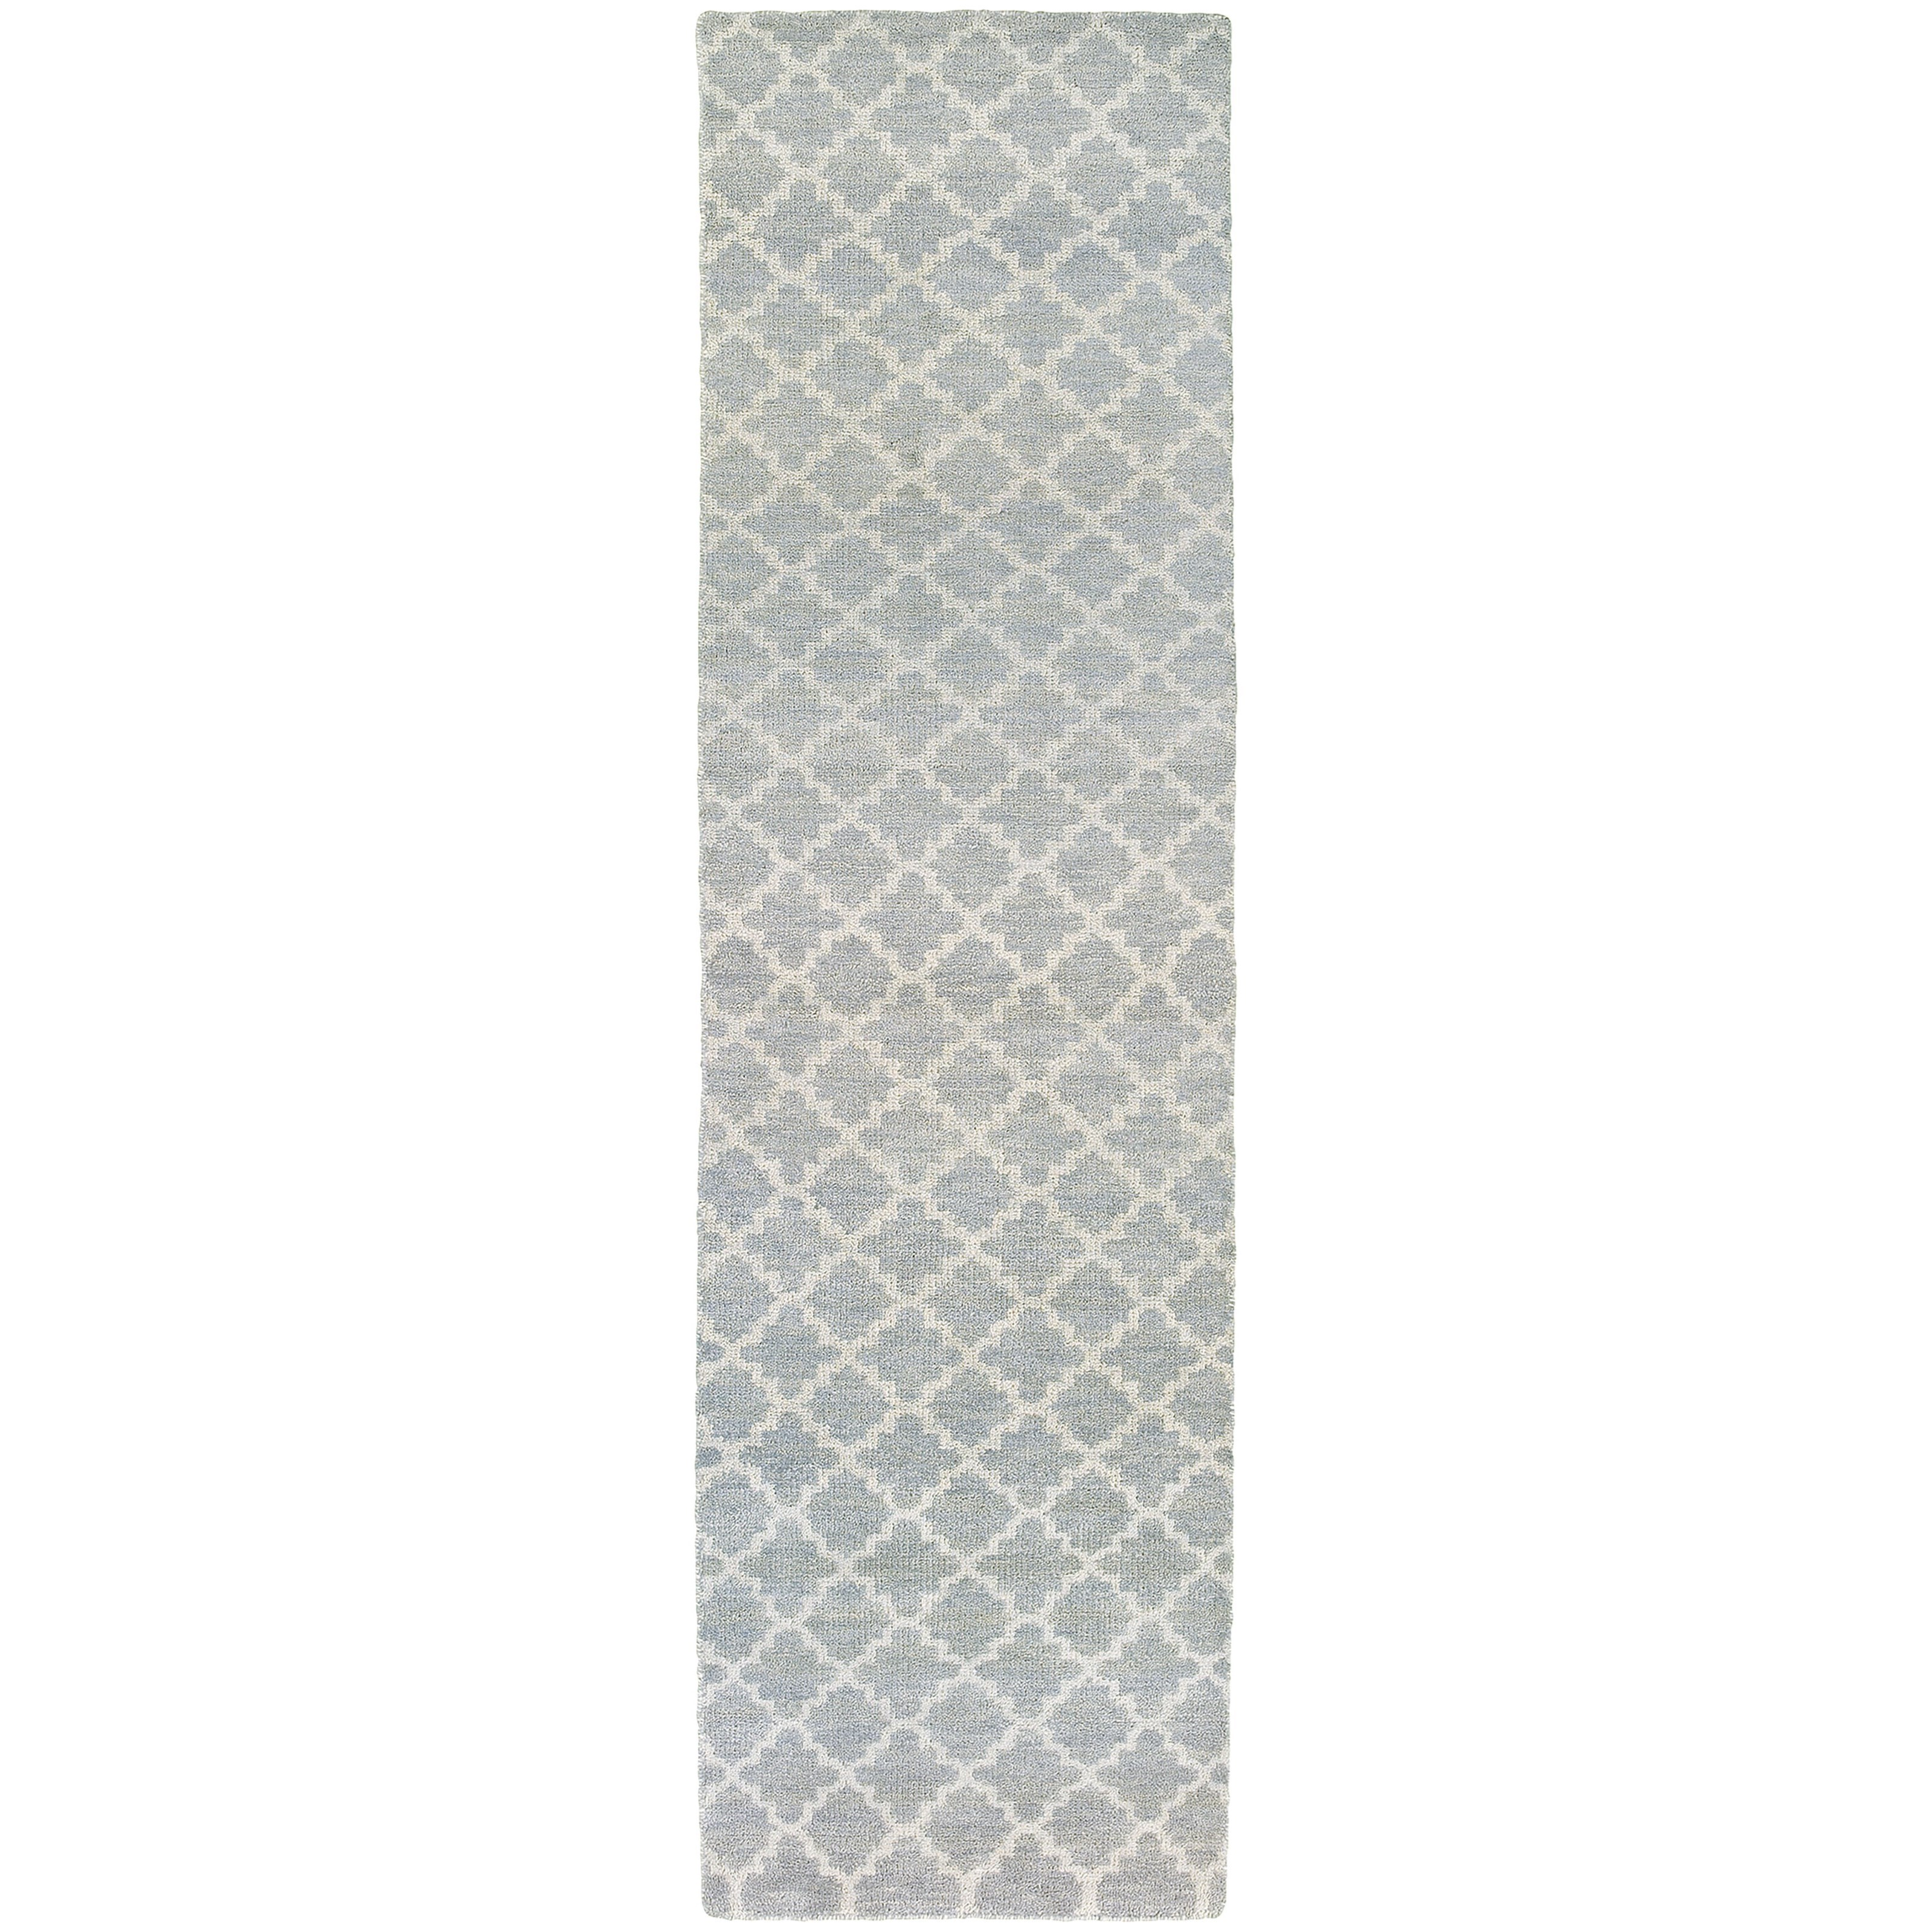 """Maddox 3' 6"""" X  5' 6"""" Rectangle Rug by Oriental Weavers at Novello Home Furnishings"""